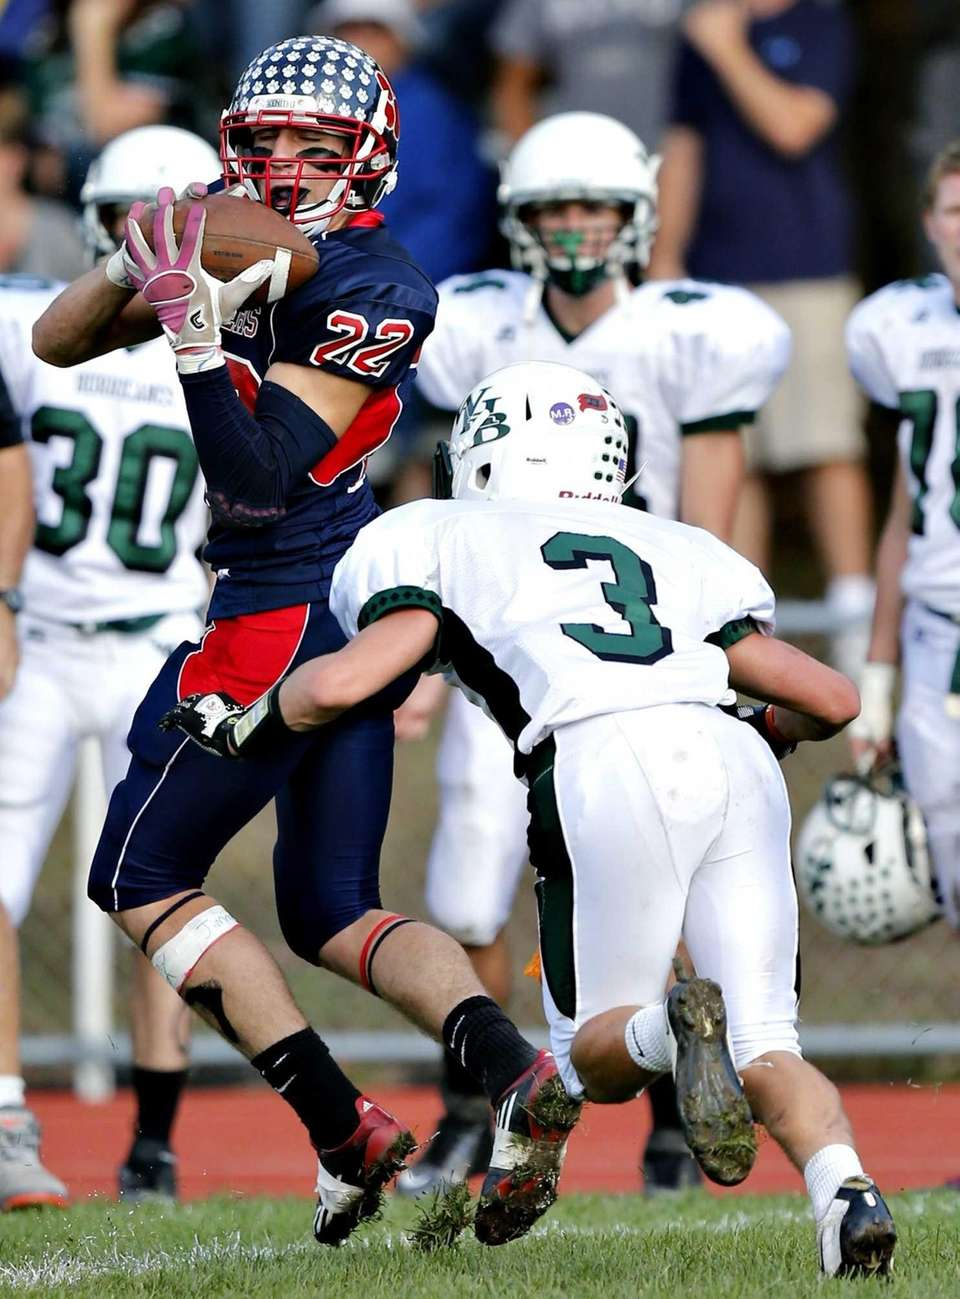 Miller Place wide receiver Austin Yezarski catches the